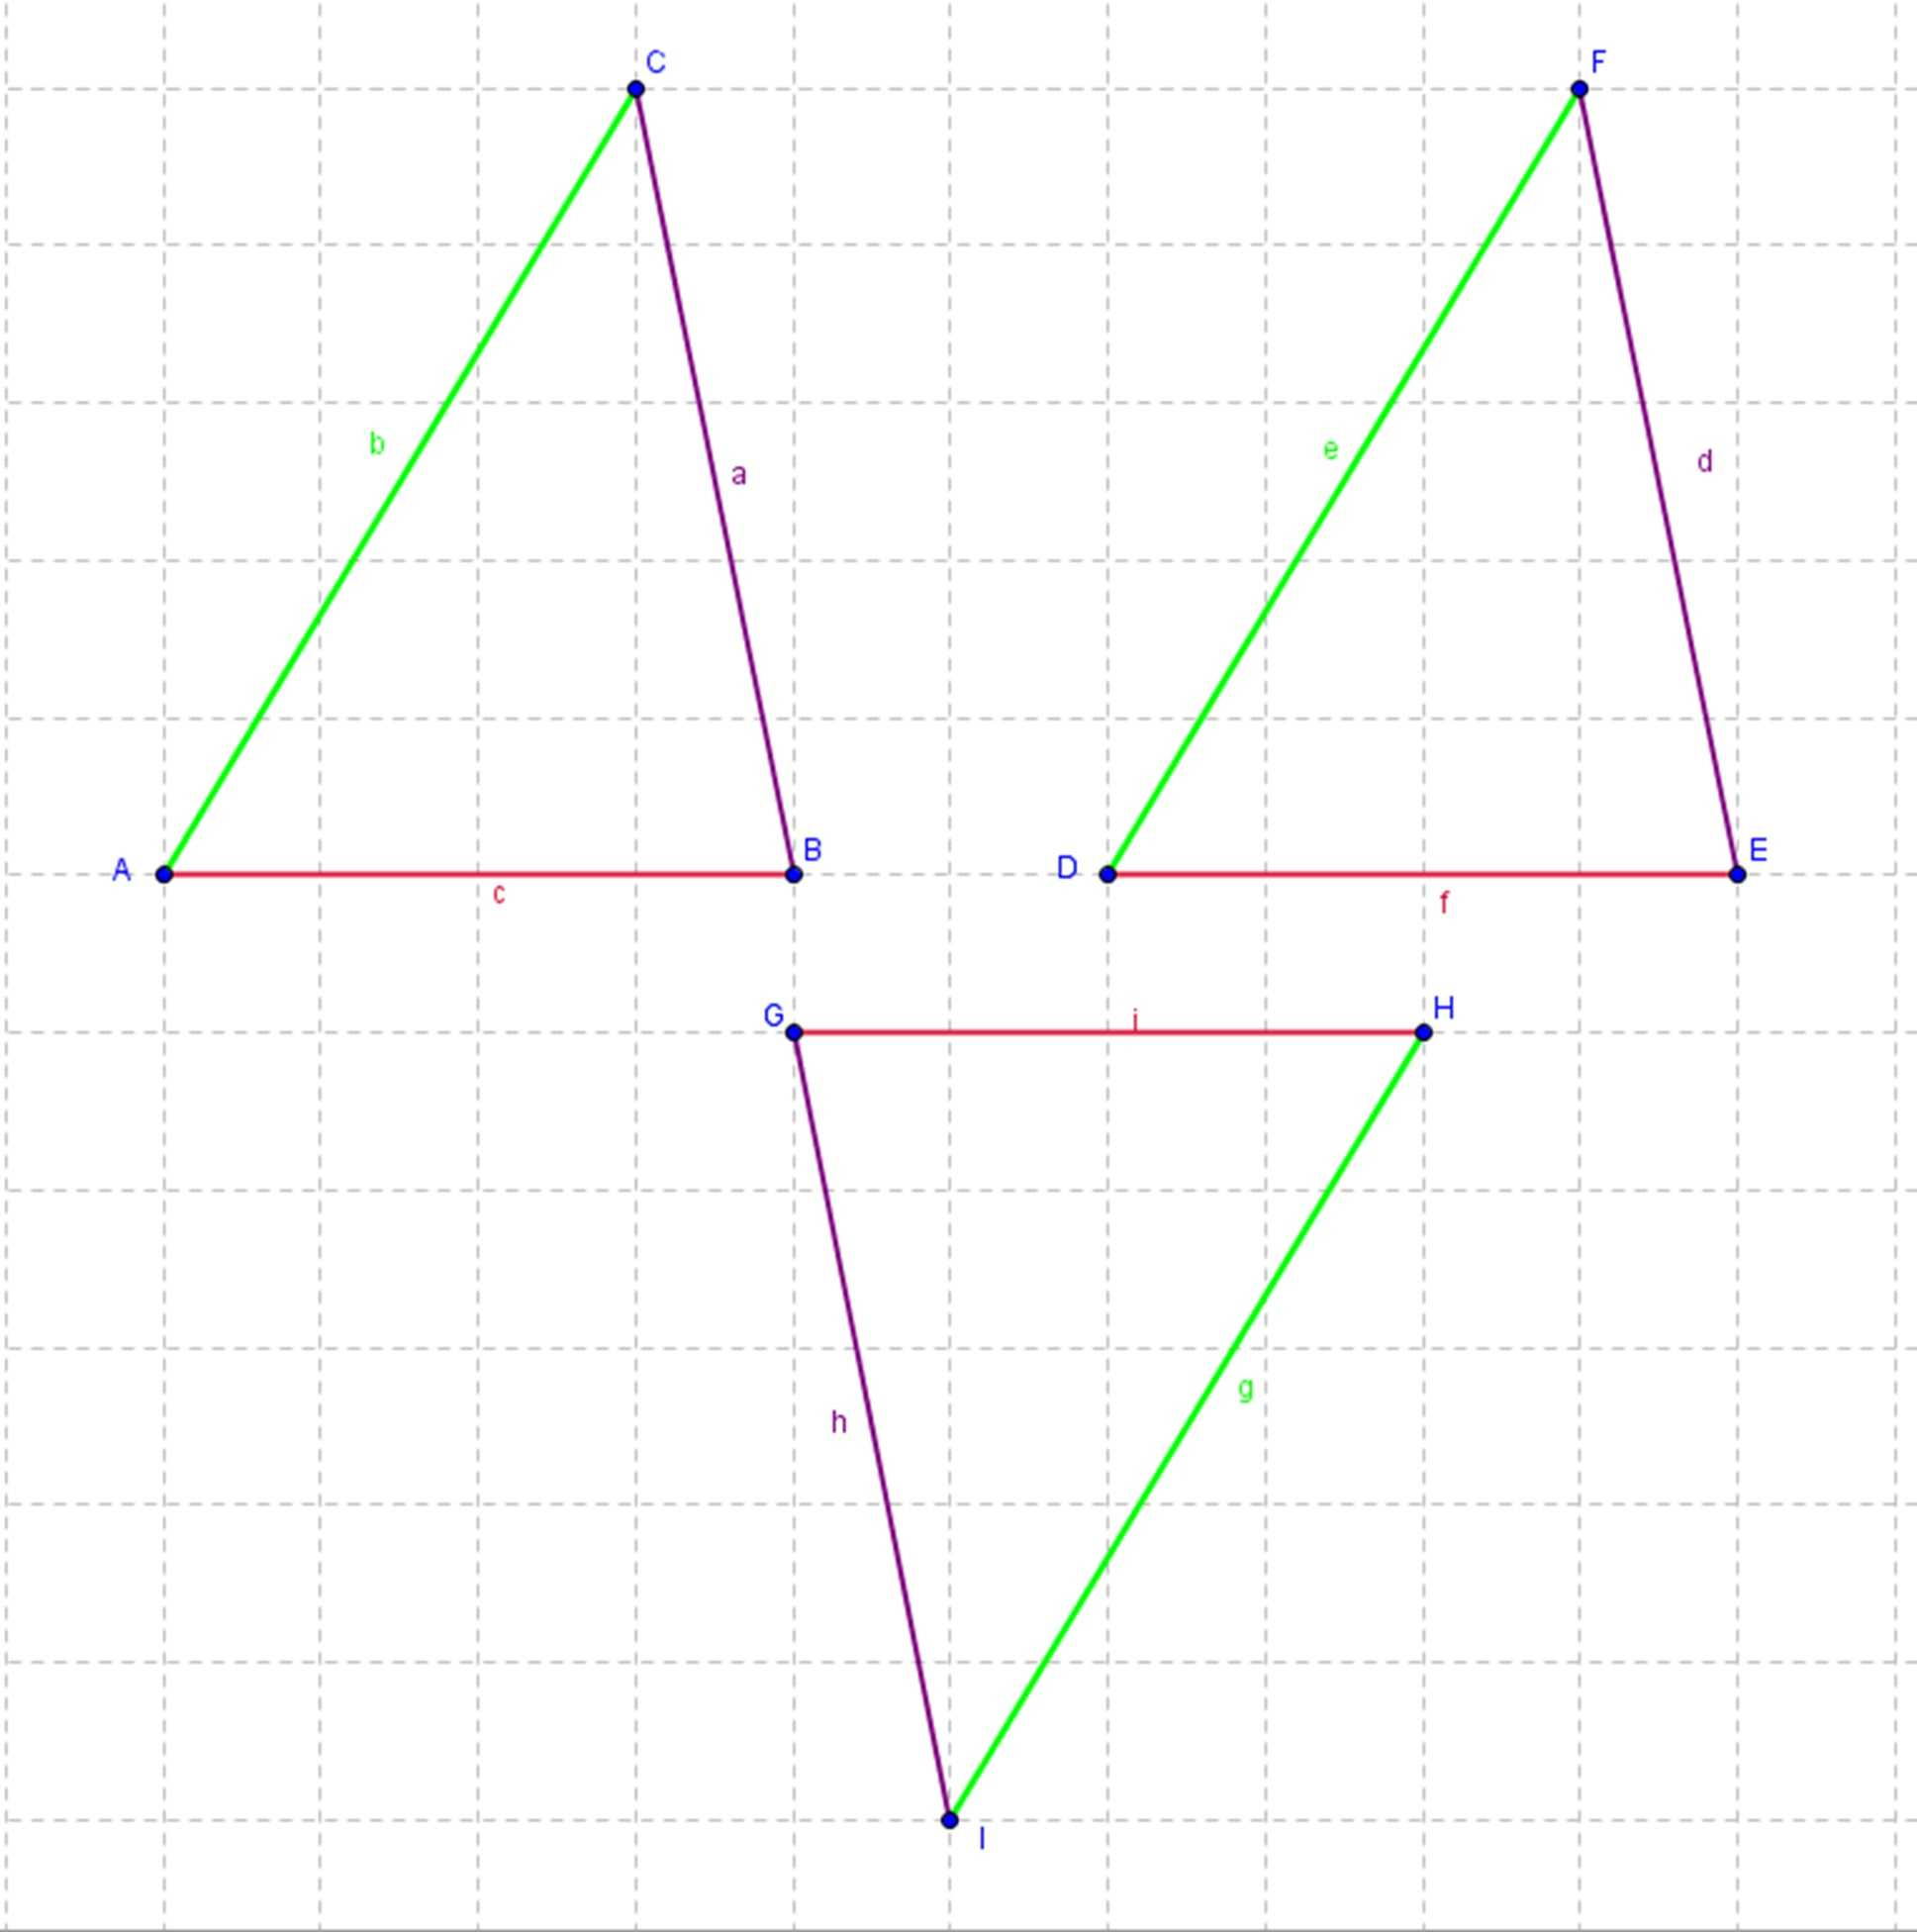 Geometry Worksheet Congruent Triangles Sss and Sas Answers Also Congruent Triangle theorems Worksheet